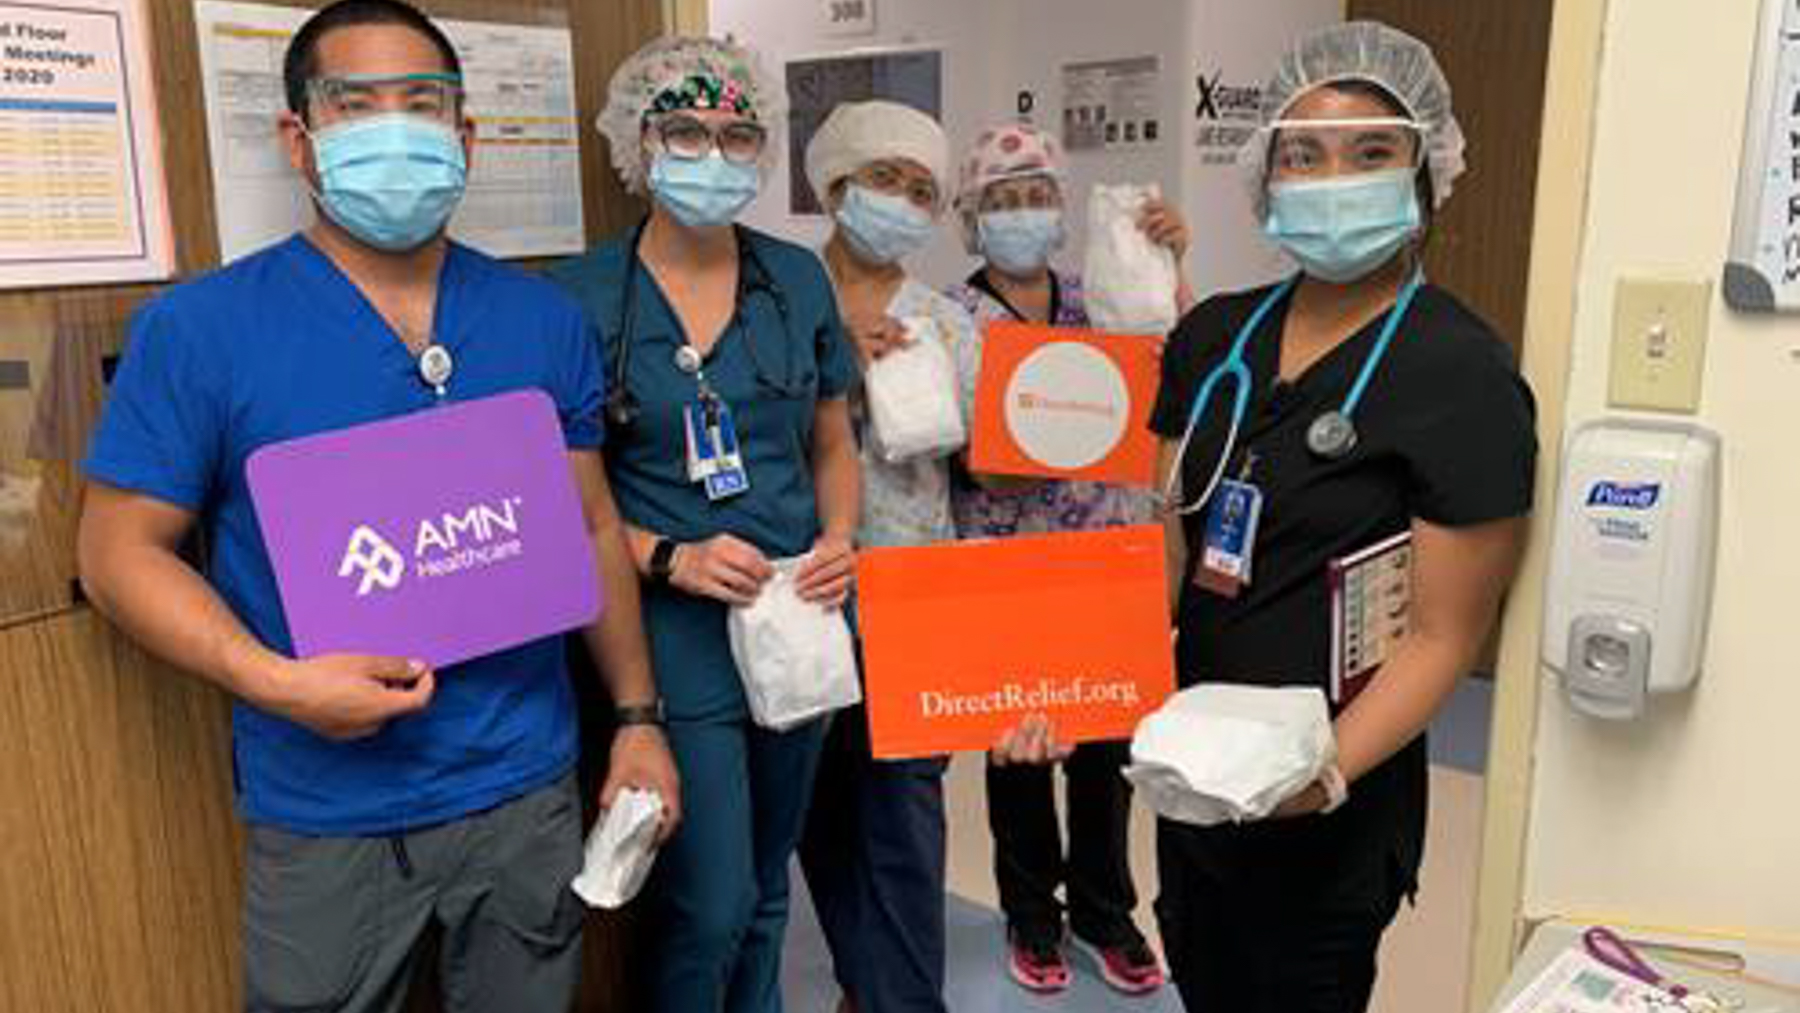 Health care providers at Scripps Health with their donated PPE. (Photo Courtesy of Scripps Health)